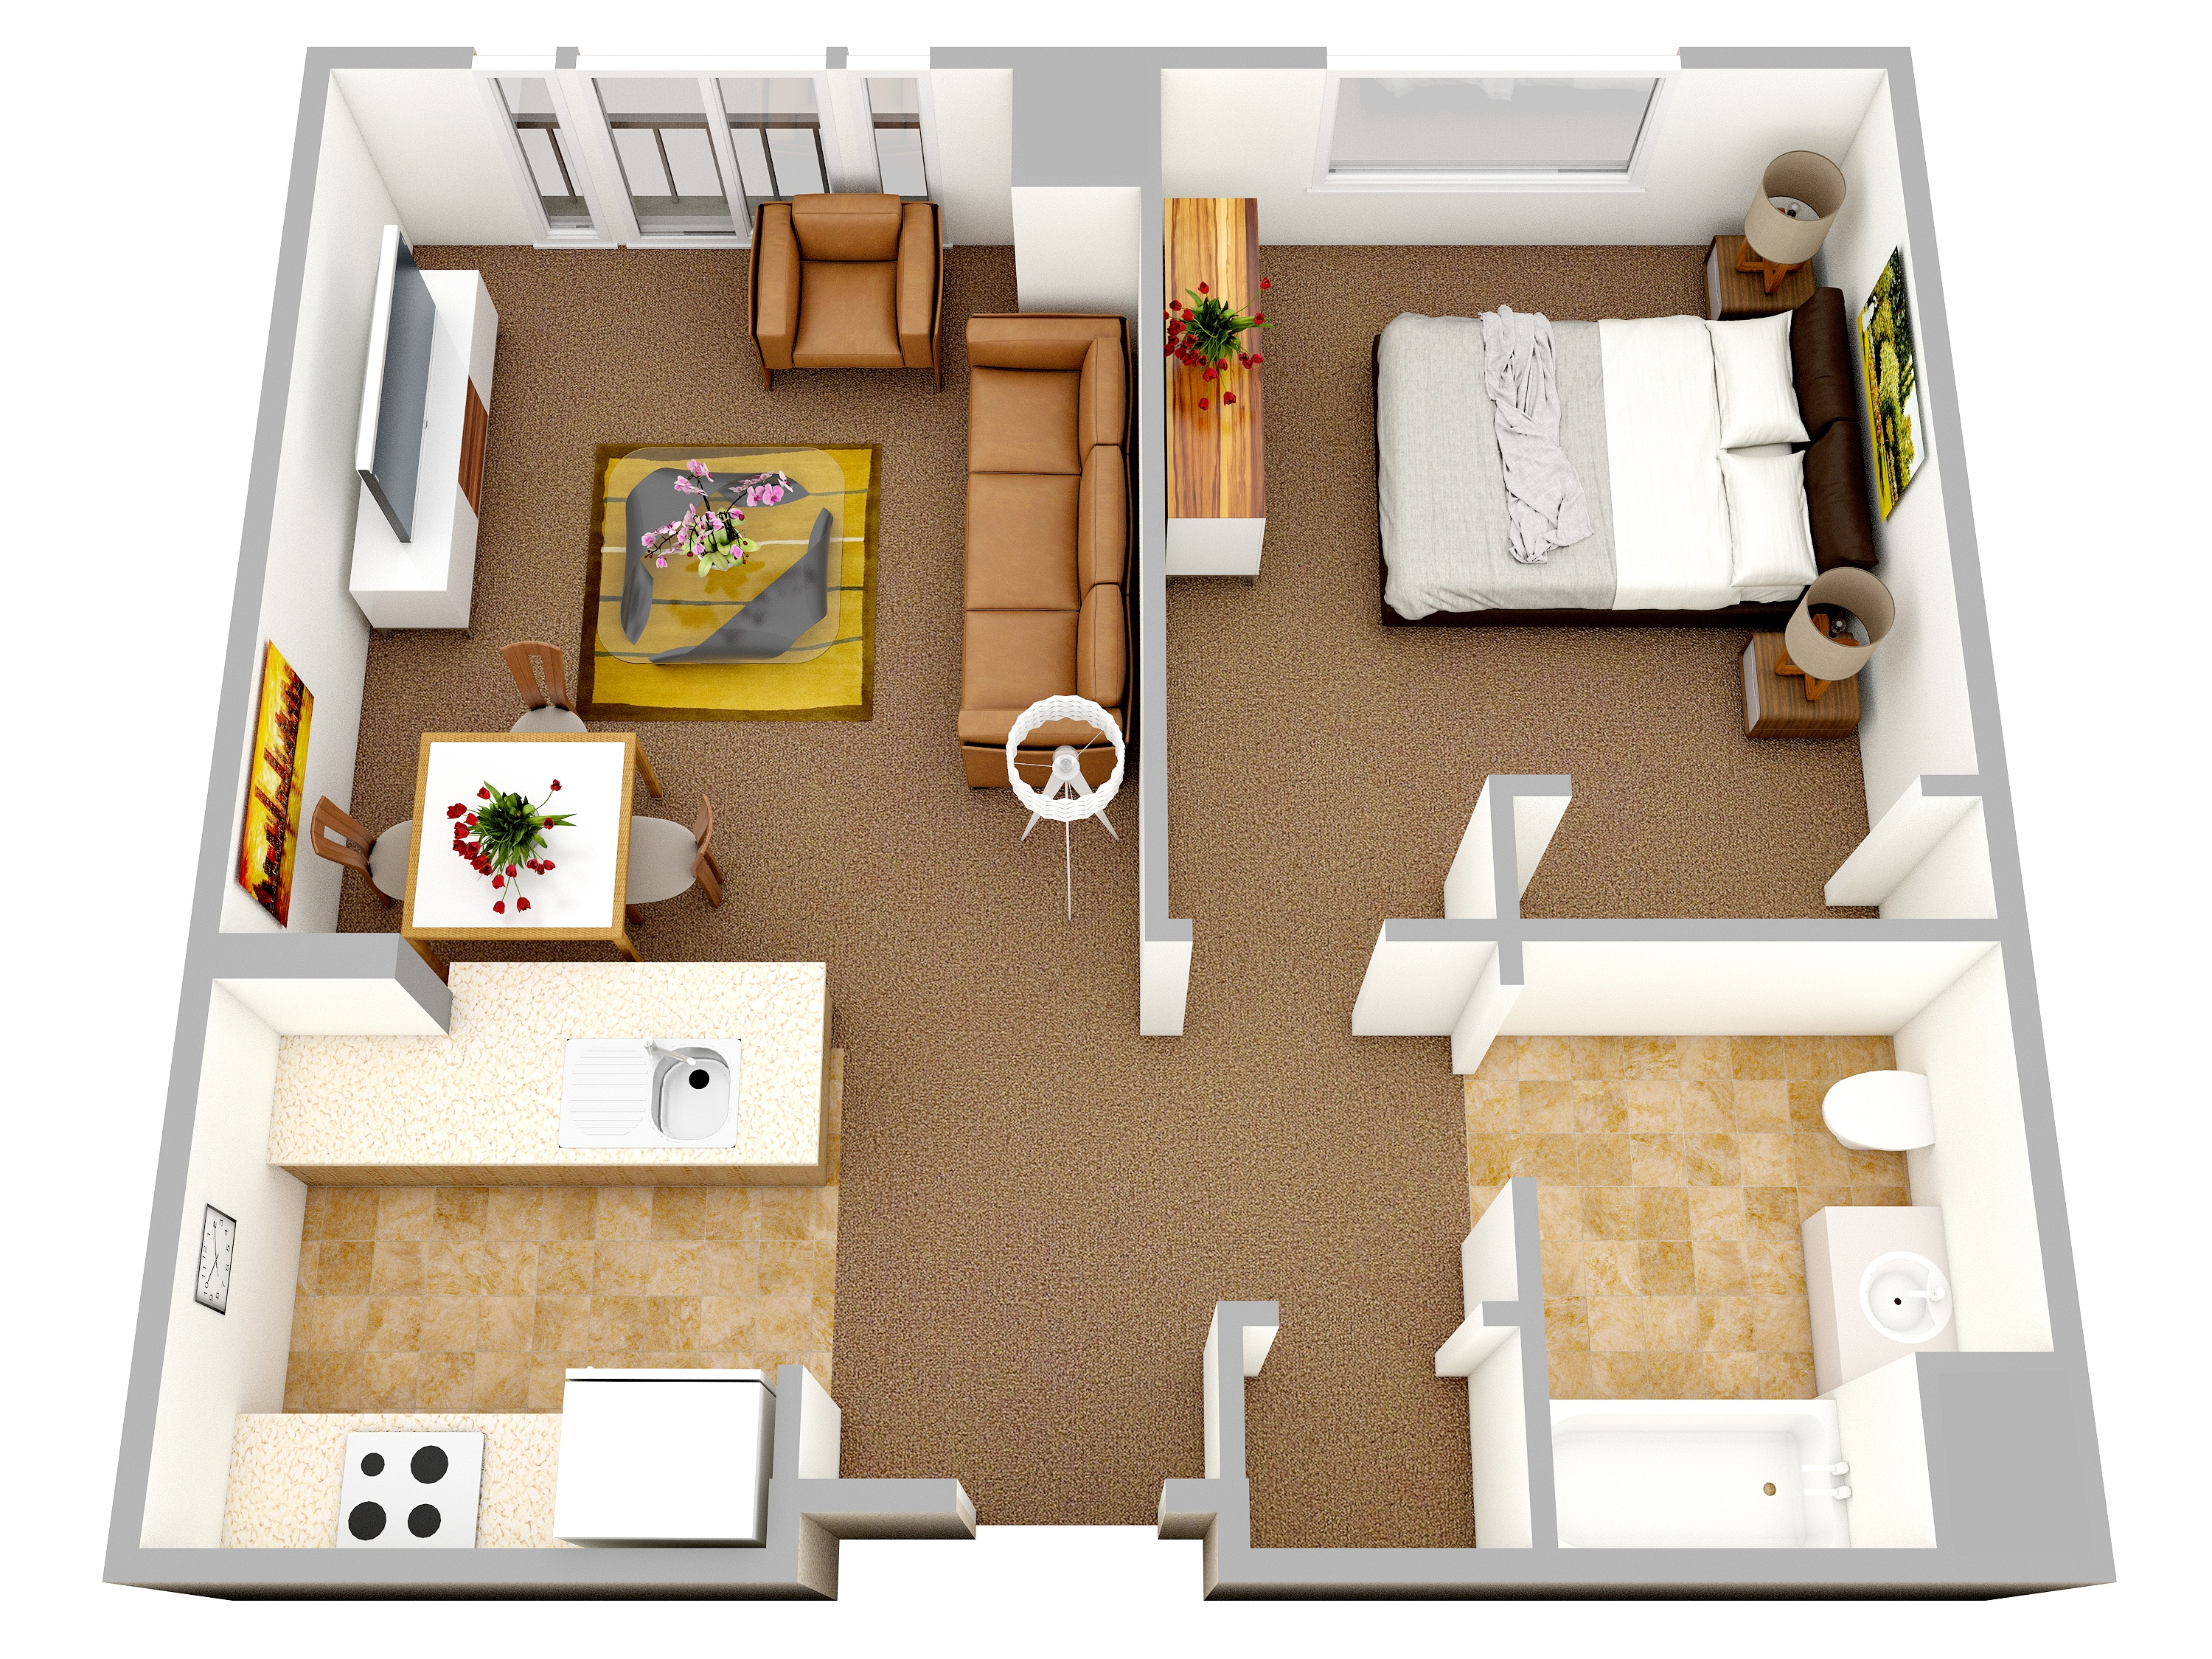 47 planos de apartamentos de 01 dormitorio tikinti for Small one room apartment ideas